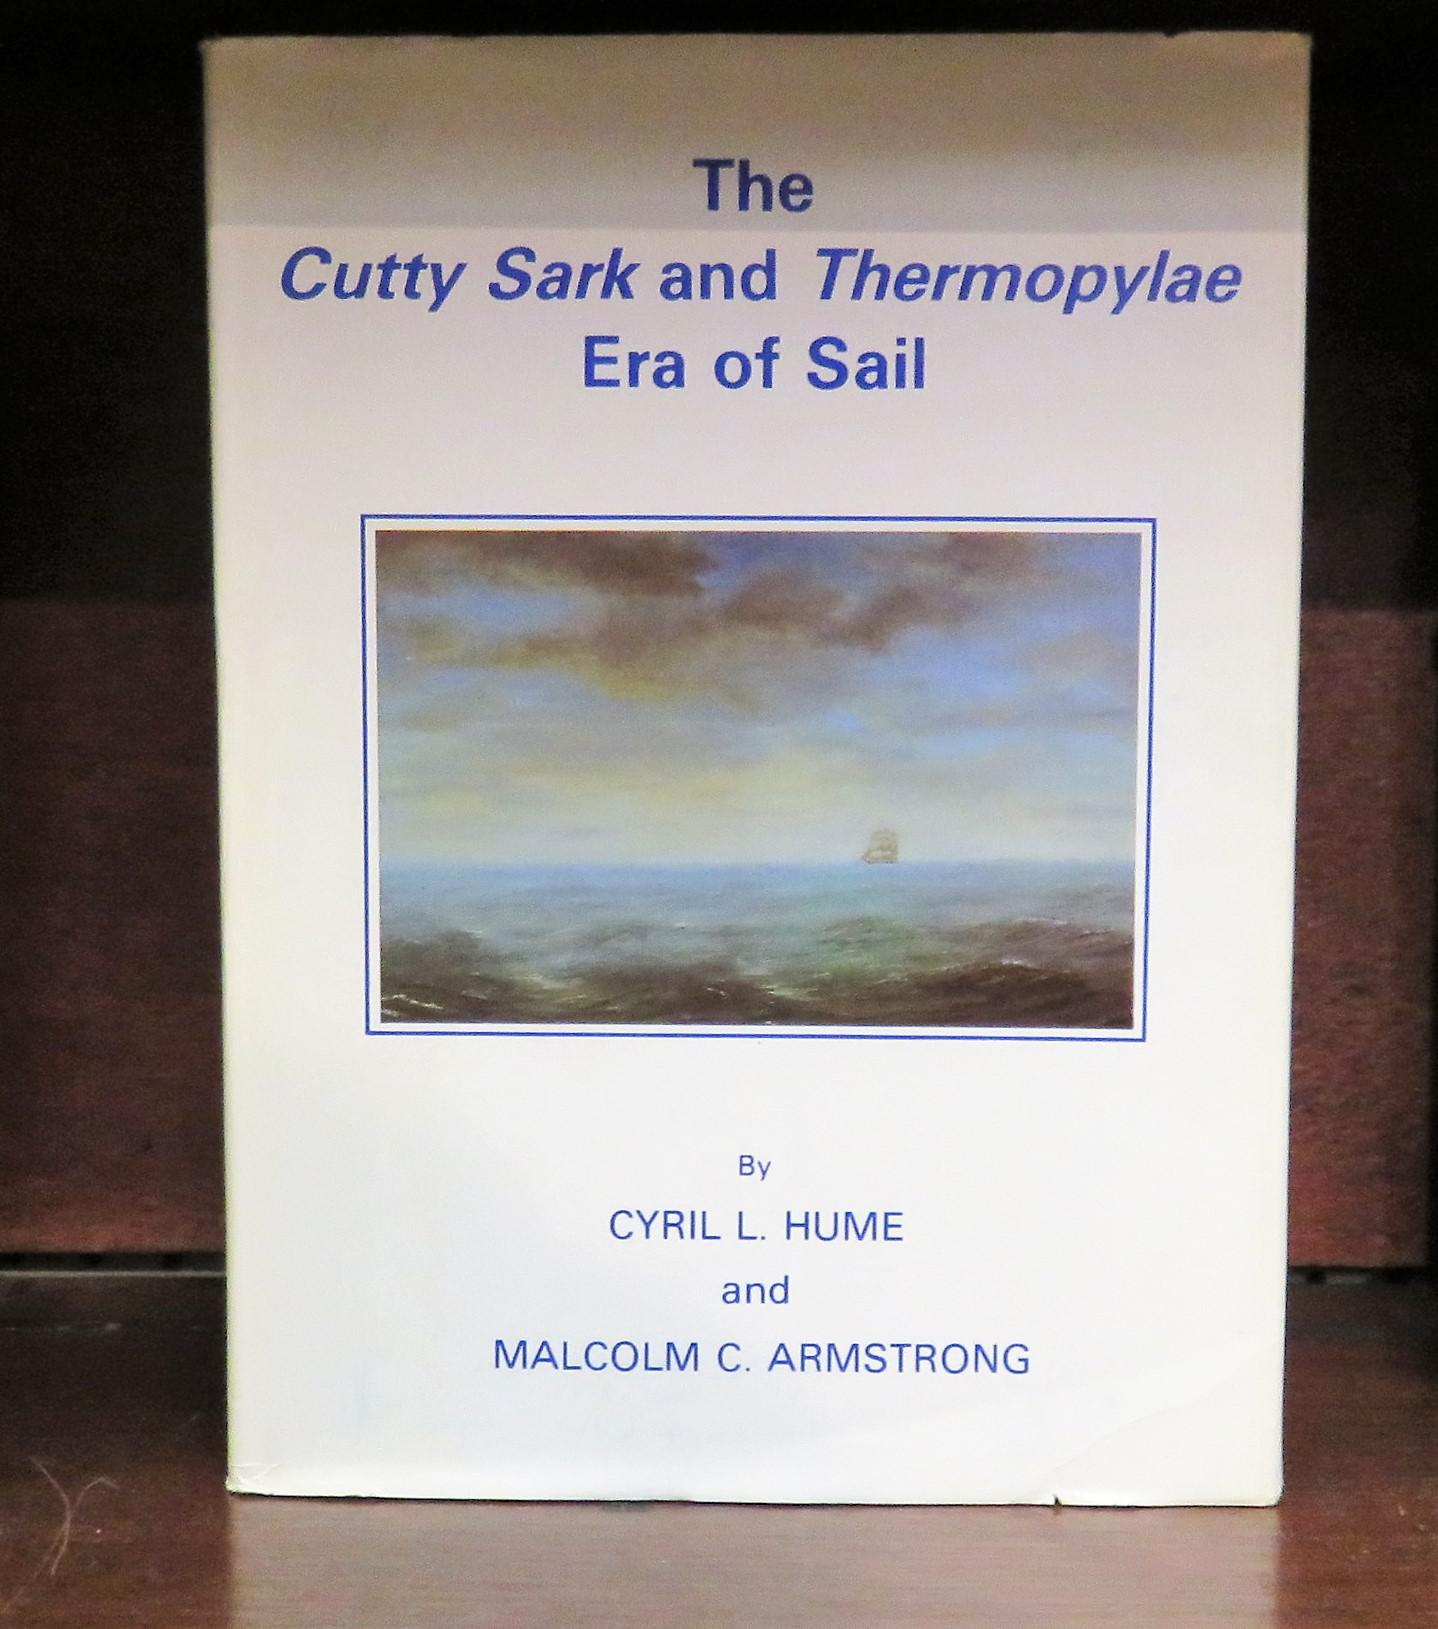 The Cutty Sark and Thermopylae Era of Sail